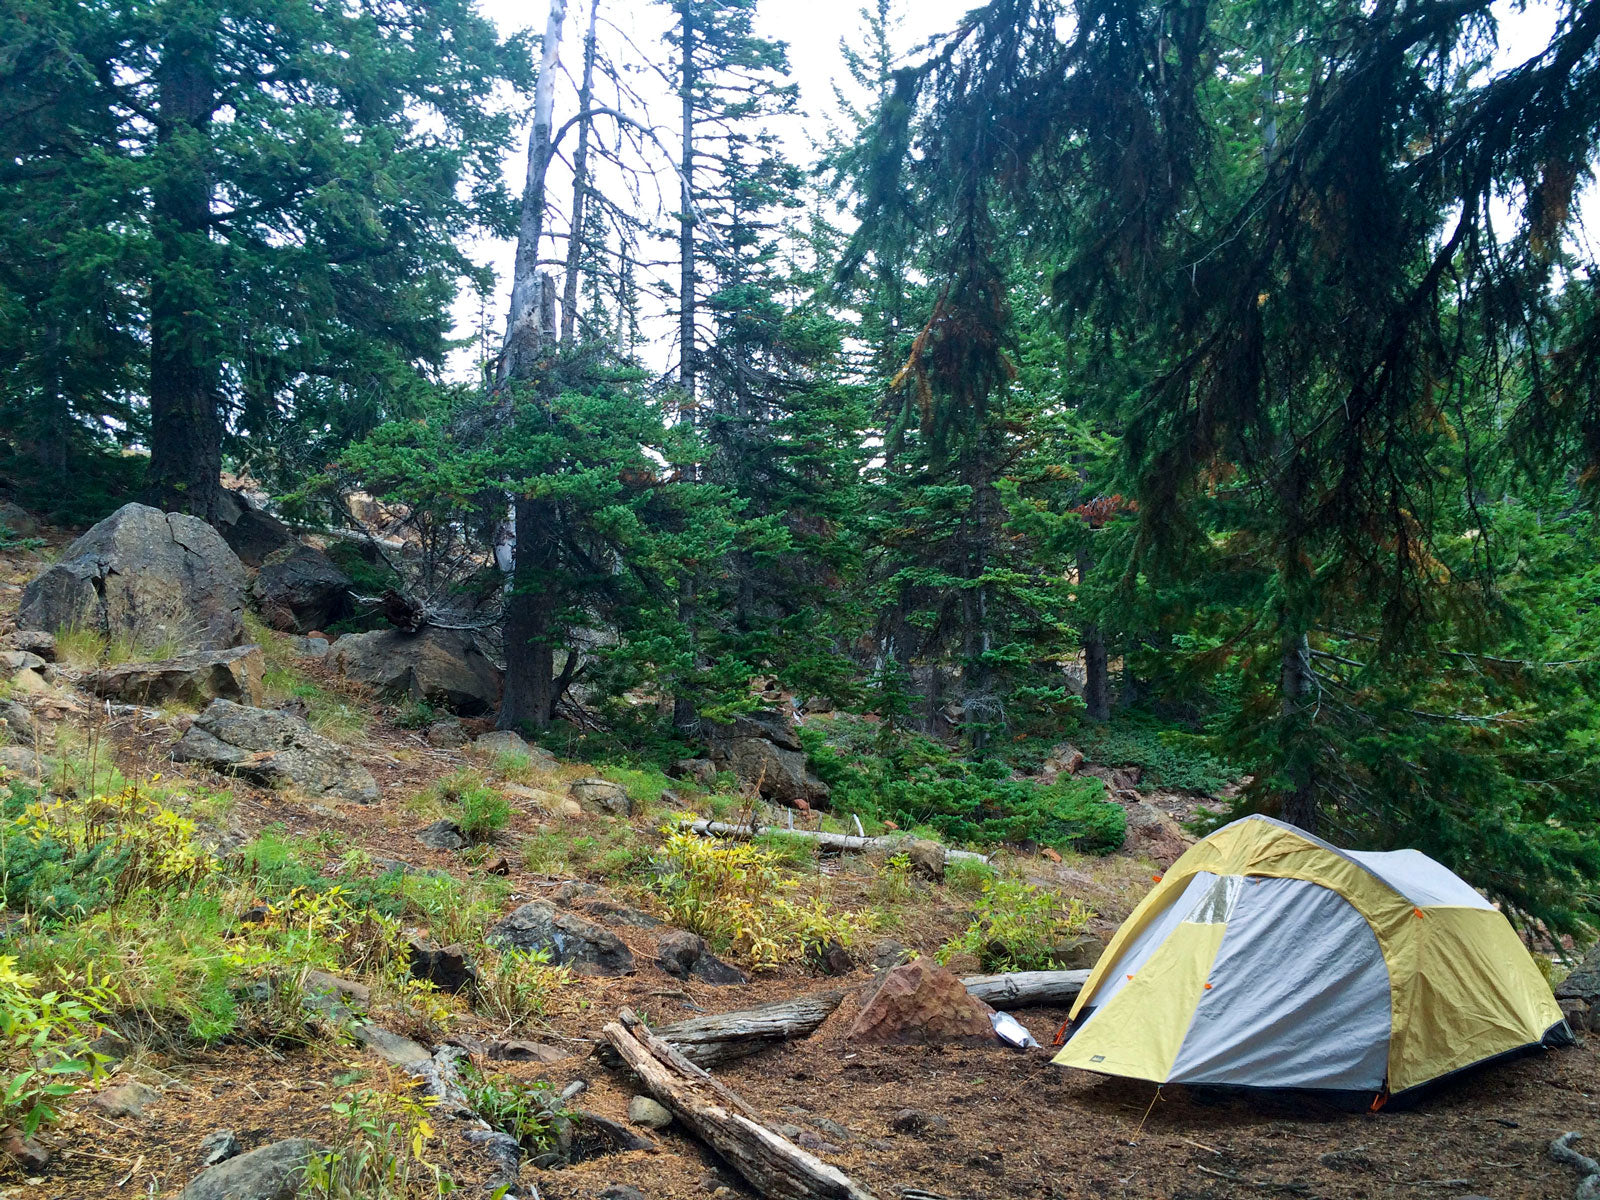 Jennifer's First Overnight Backpacking Trip - The CloudLine Blog